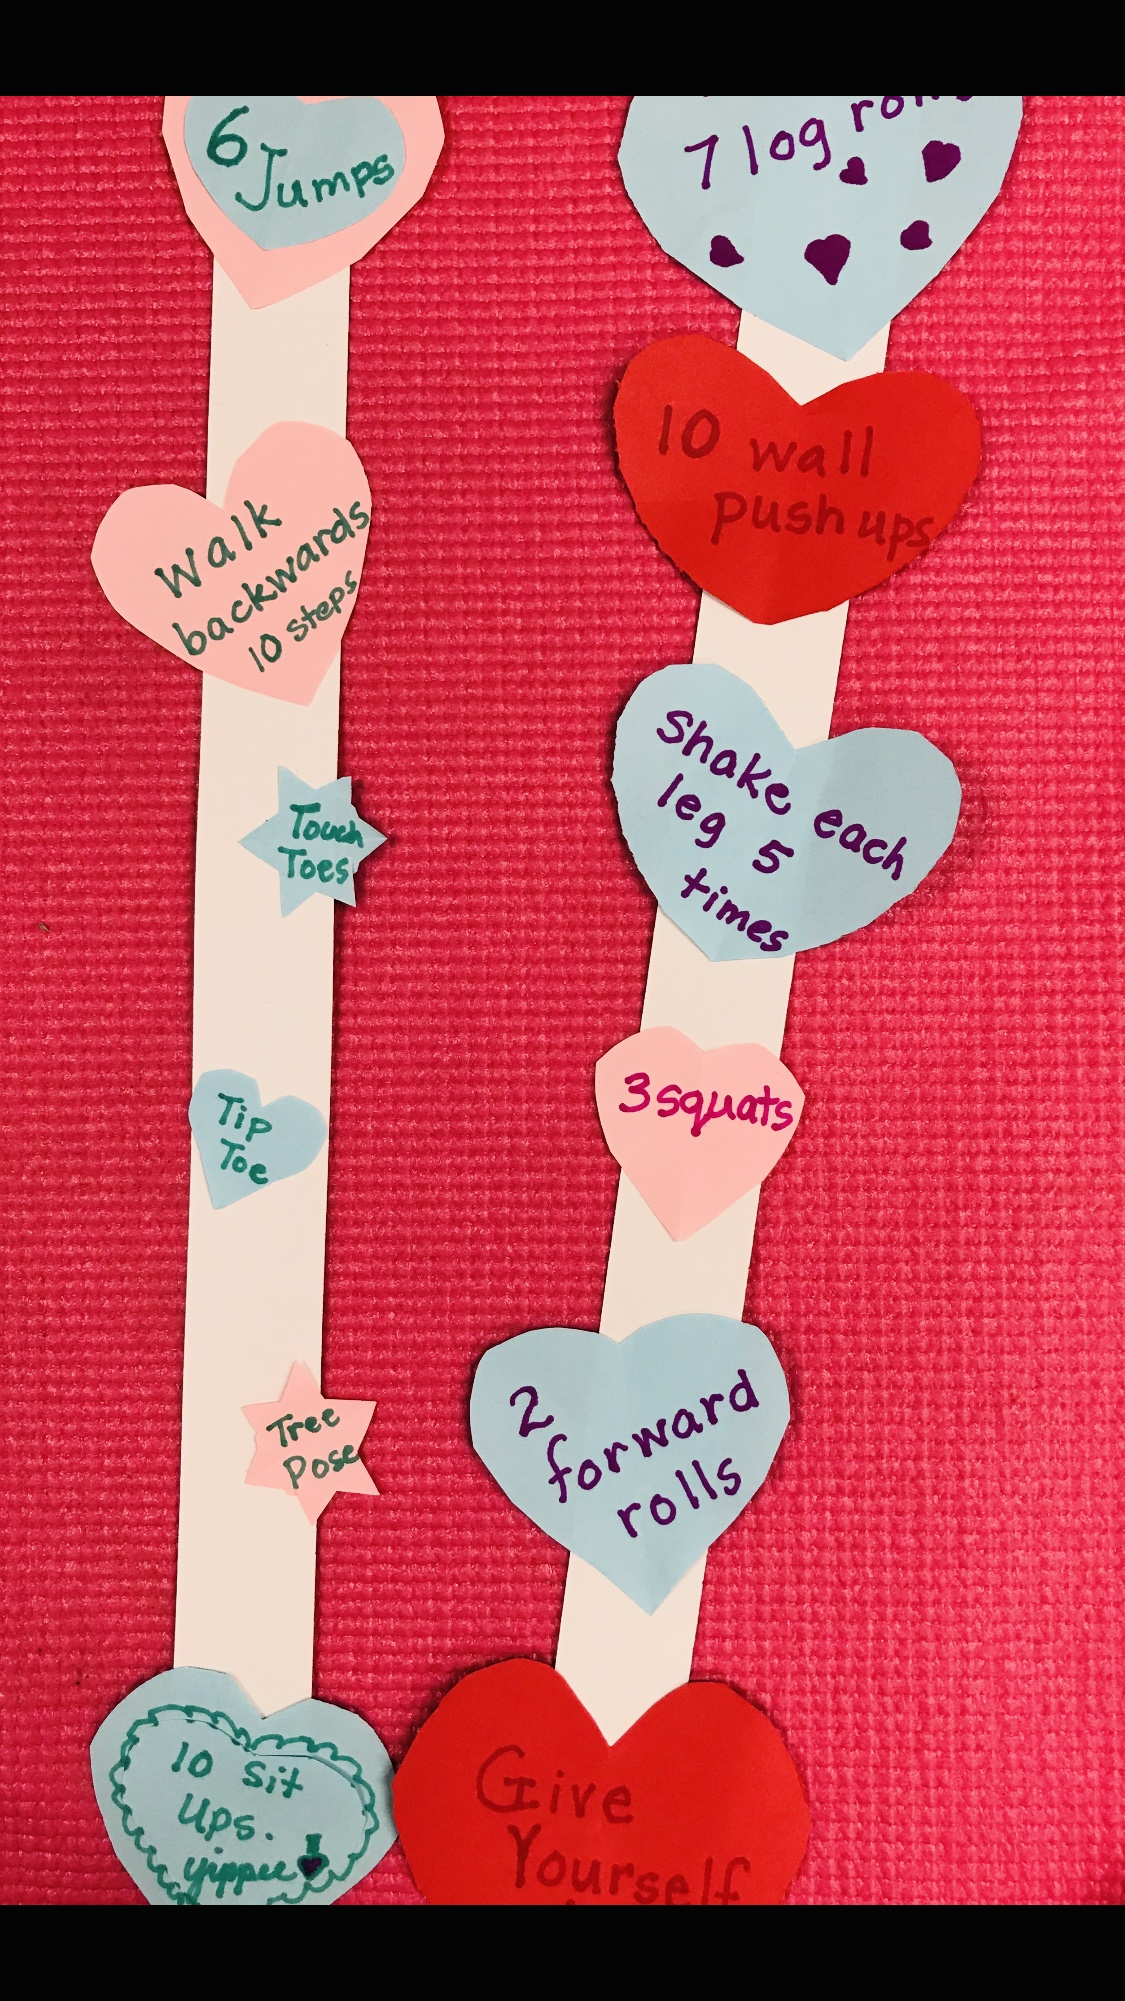 Exercise hearts on paper strips